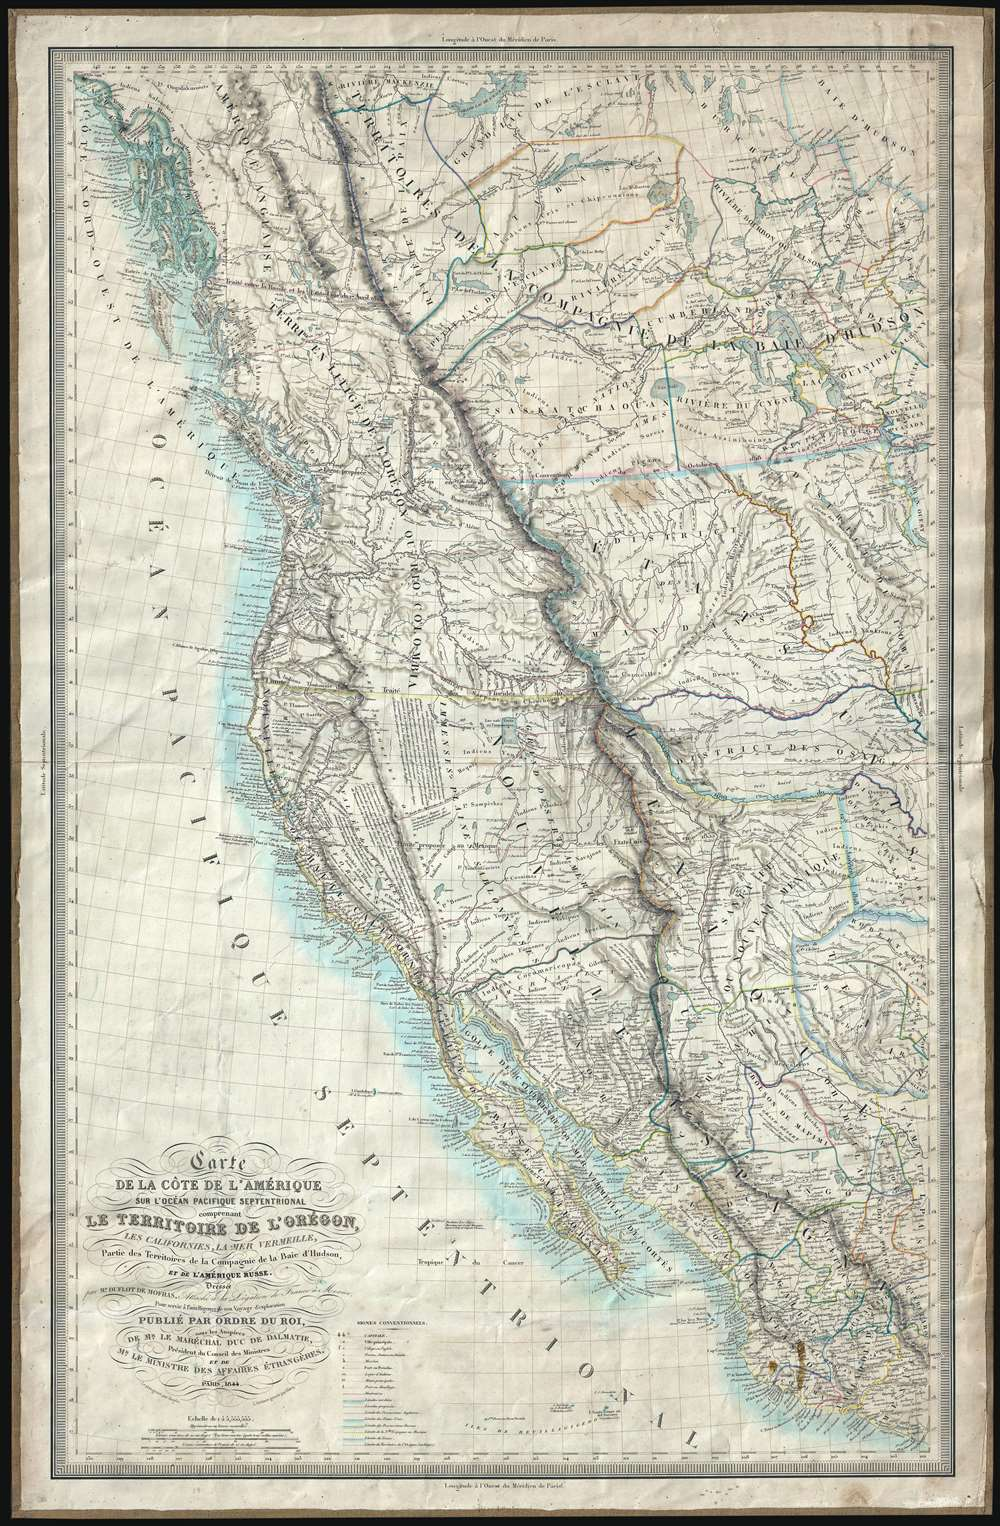 1844 Mofras Espionage  Map of the American West: California, Oregon, etc.